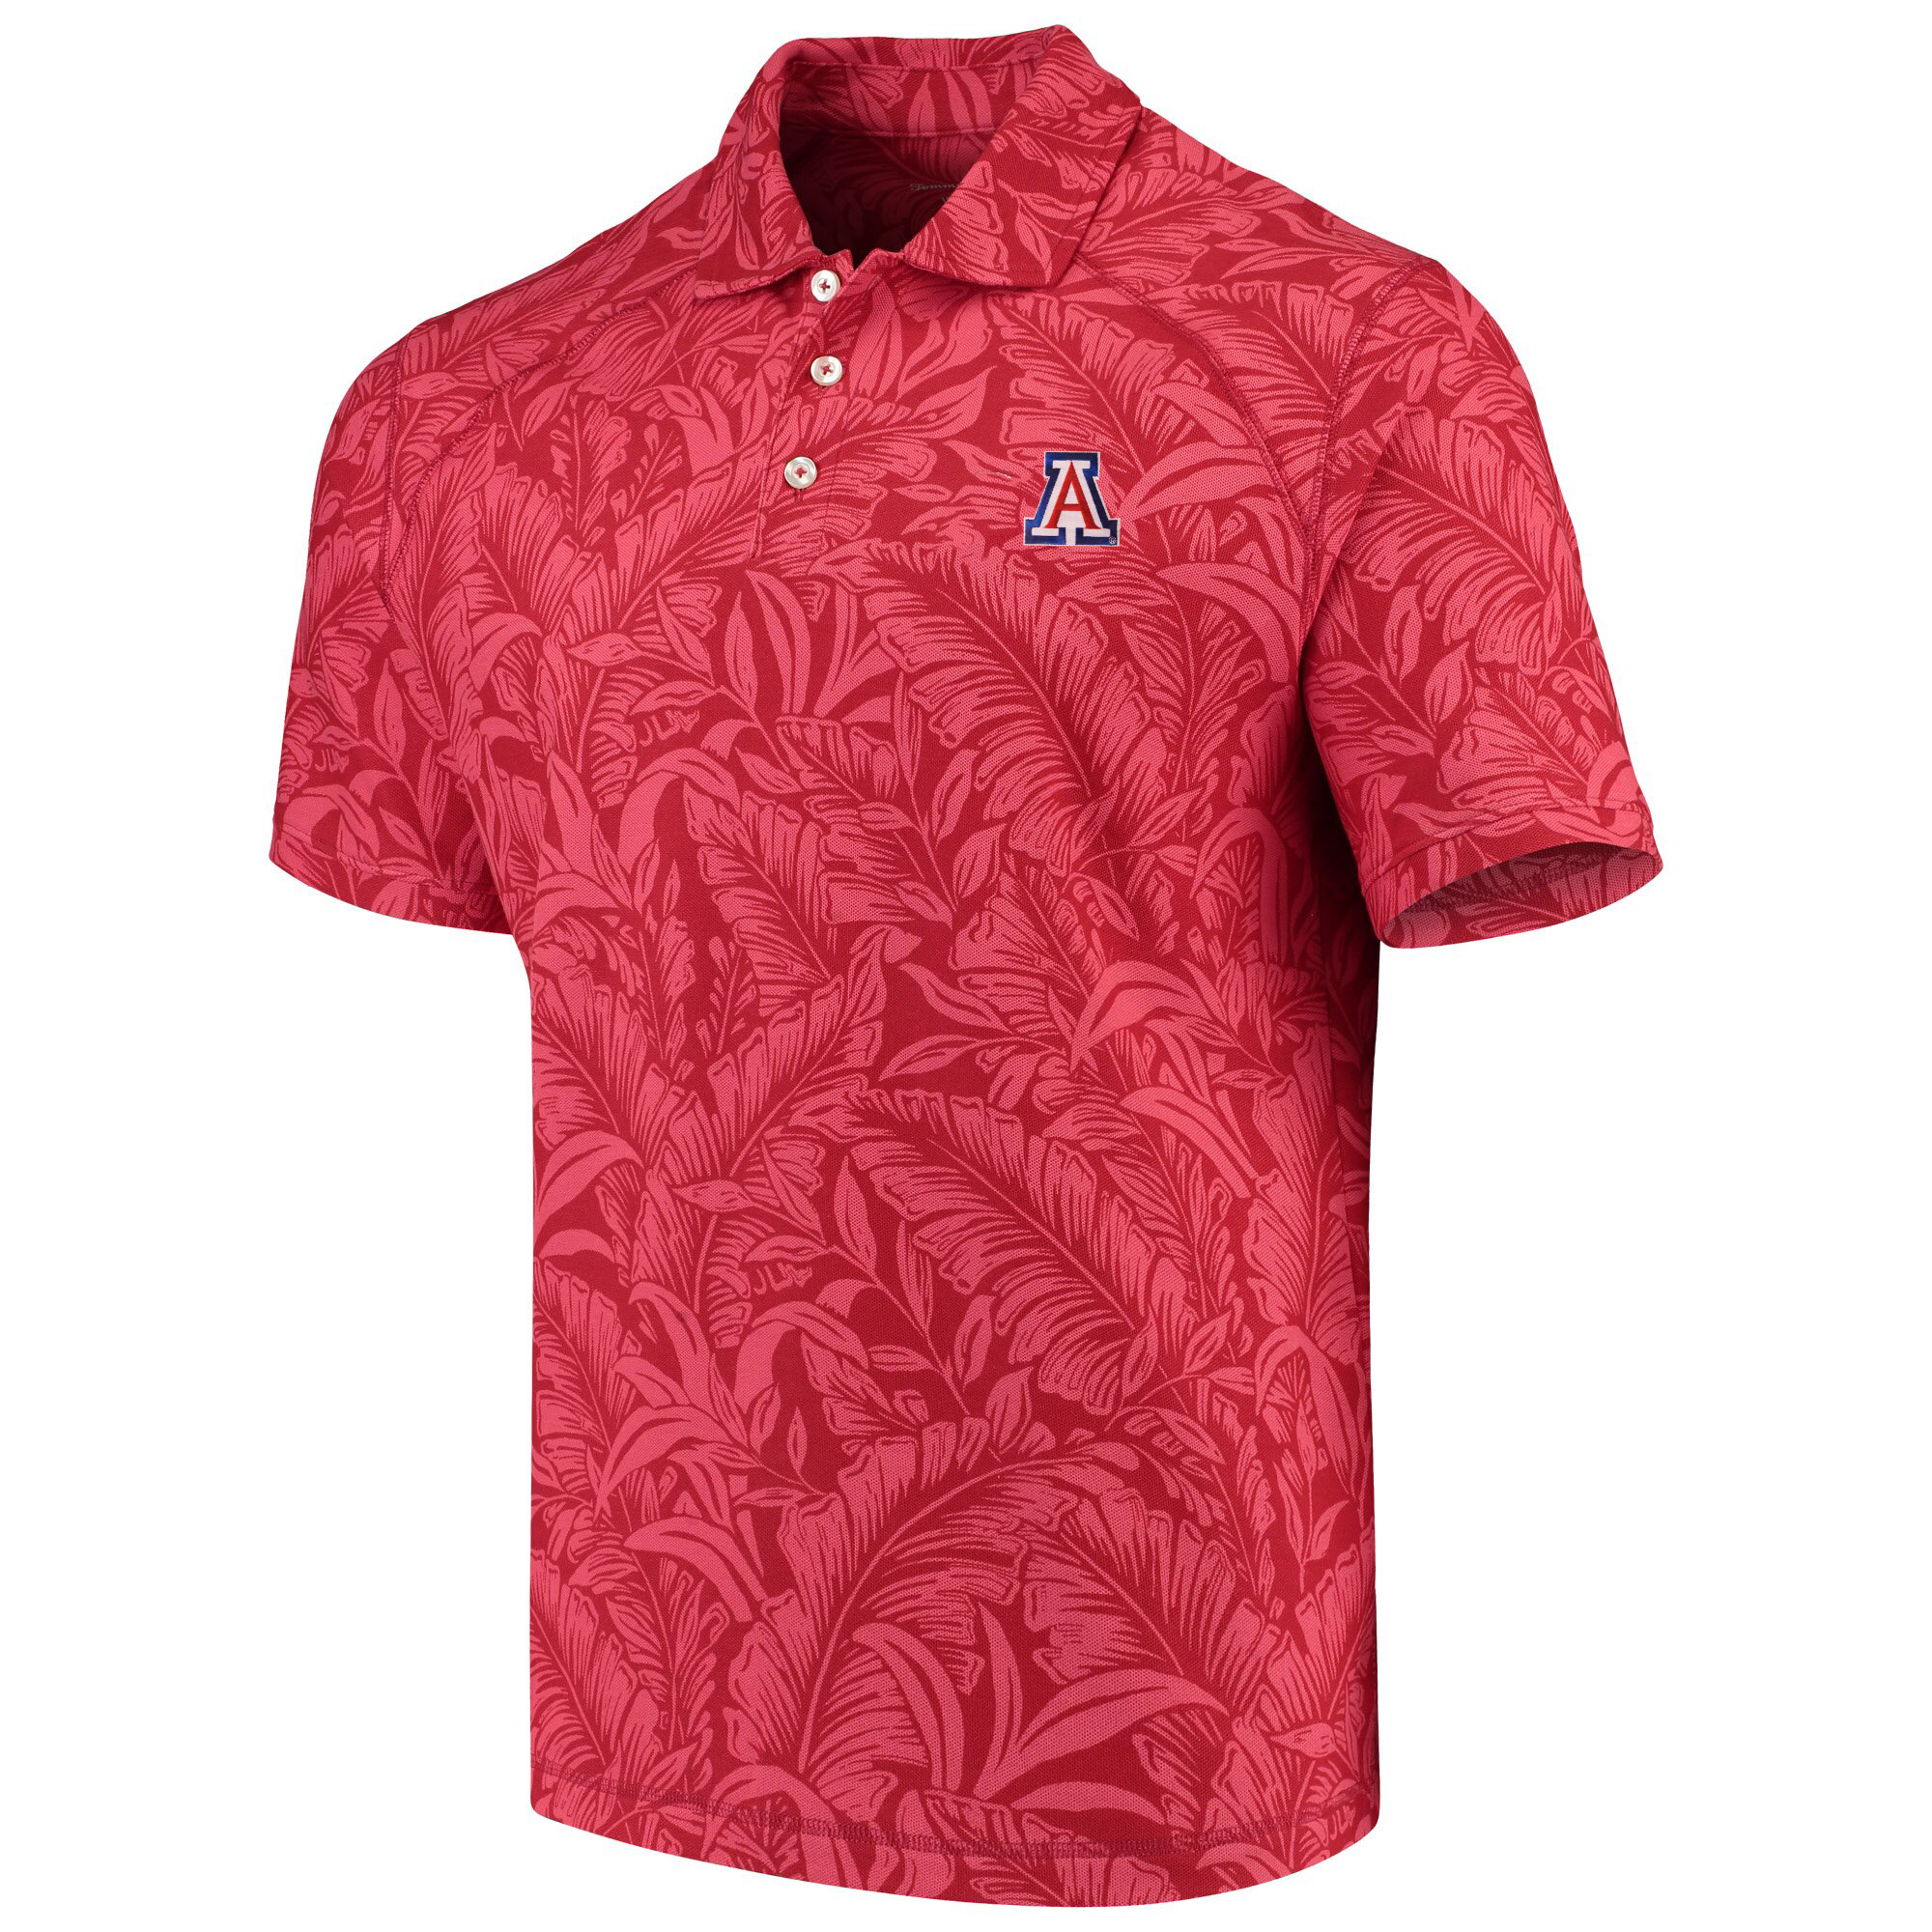 159908d8d20b Image For Tommy Bahama: Arizona Sport Leafbacker Polo - Chili Pepper